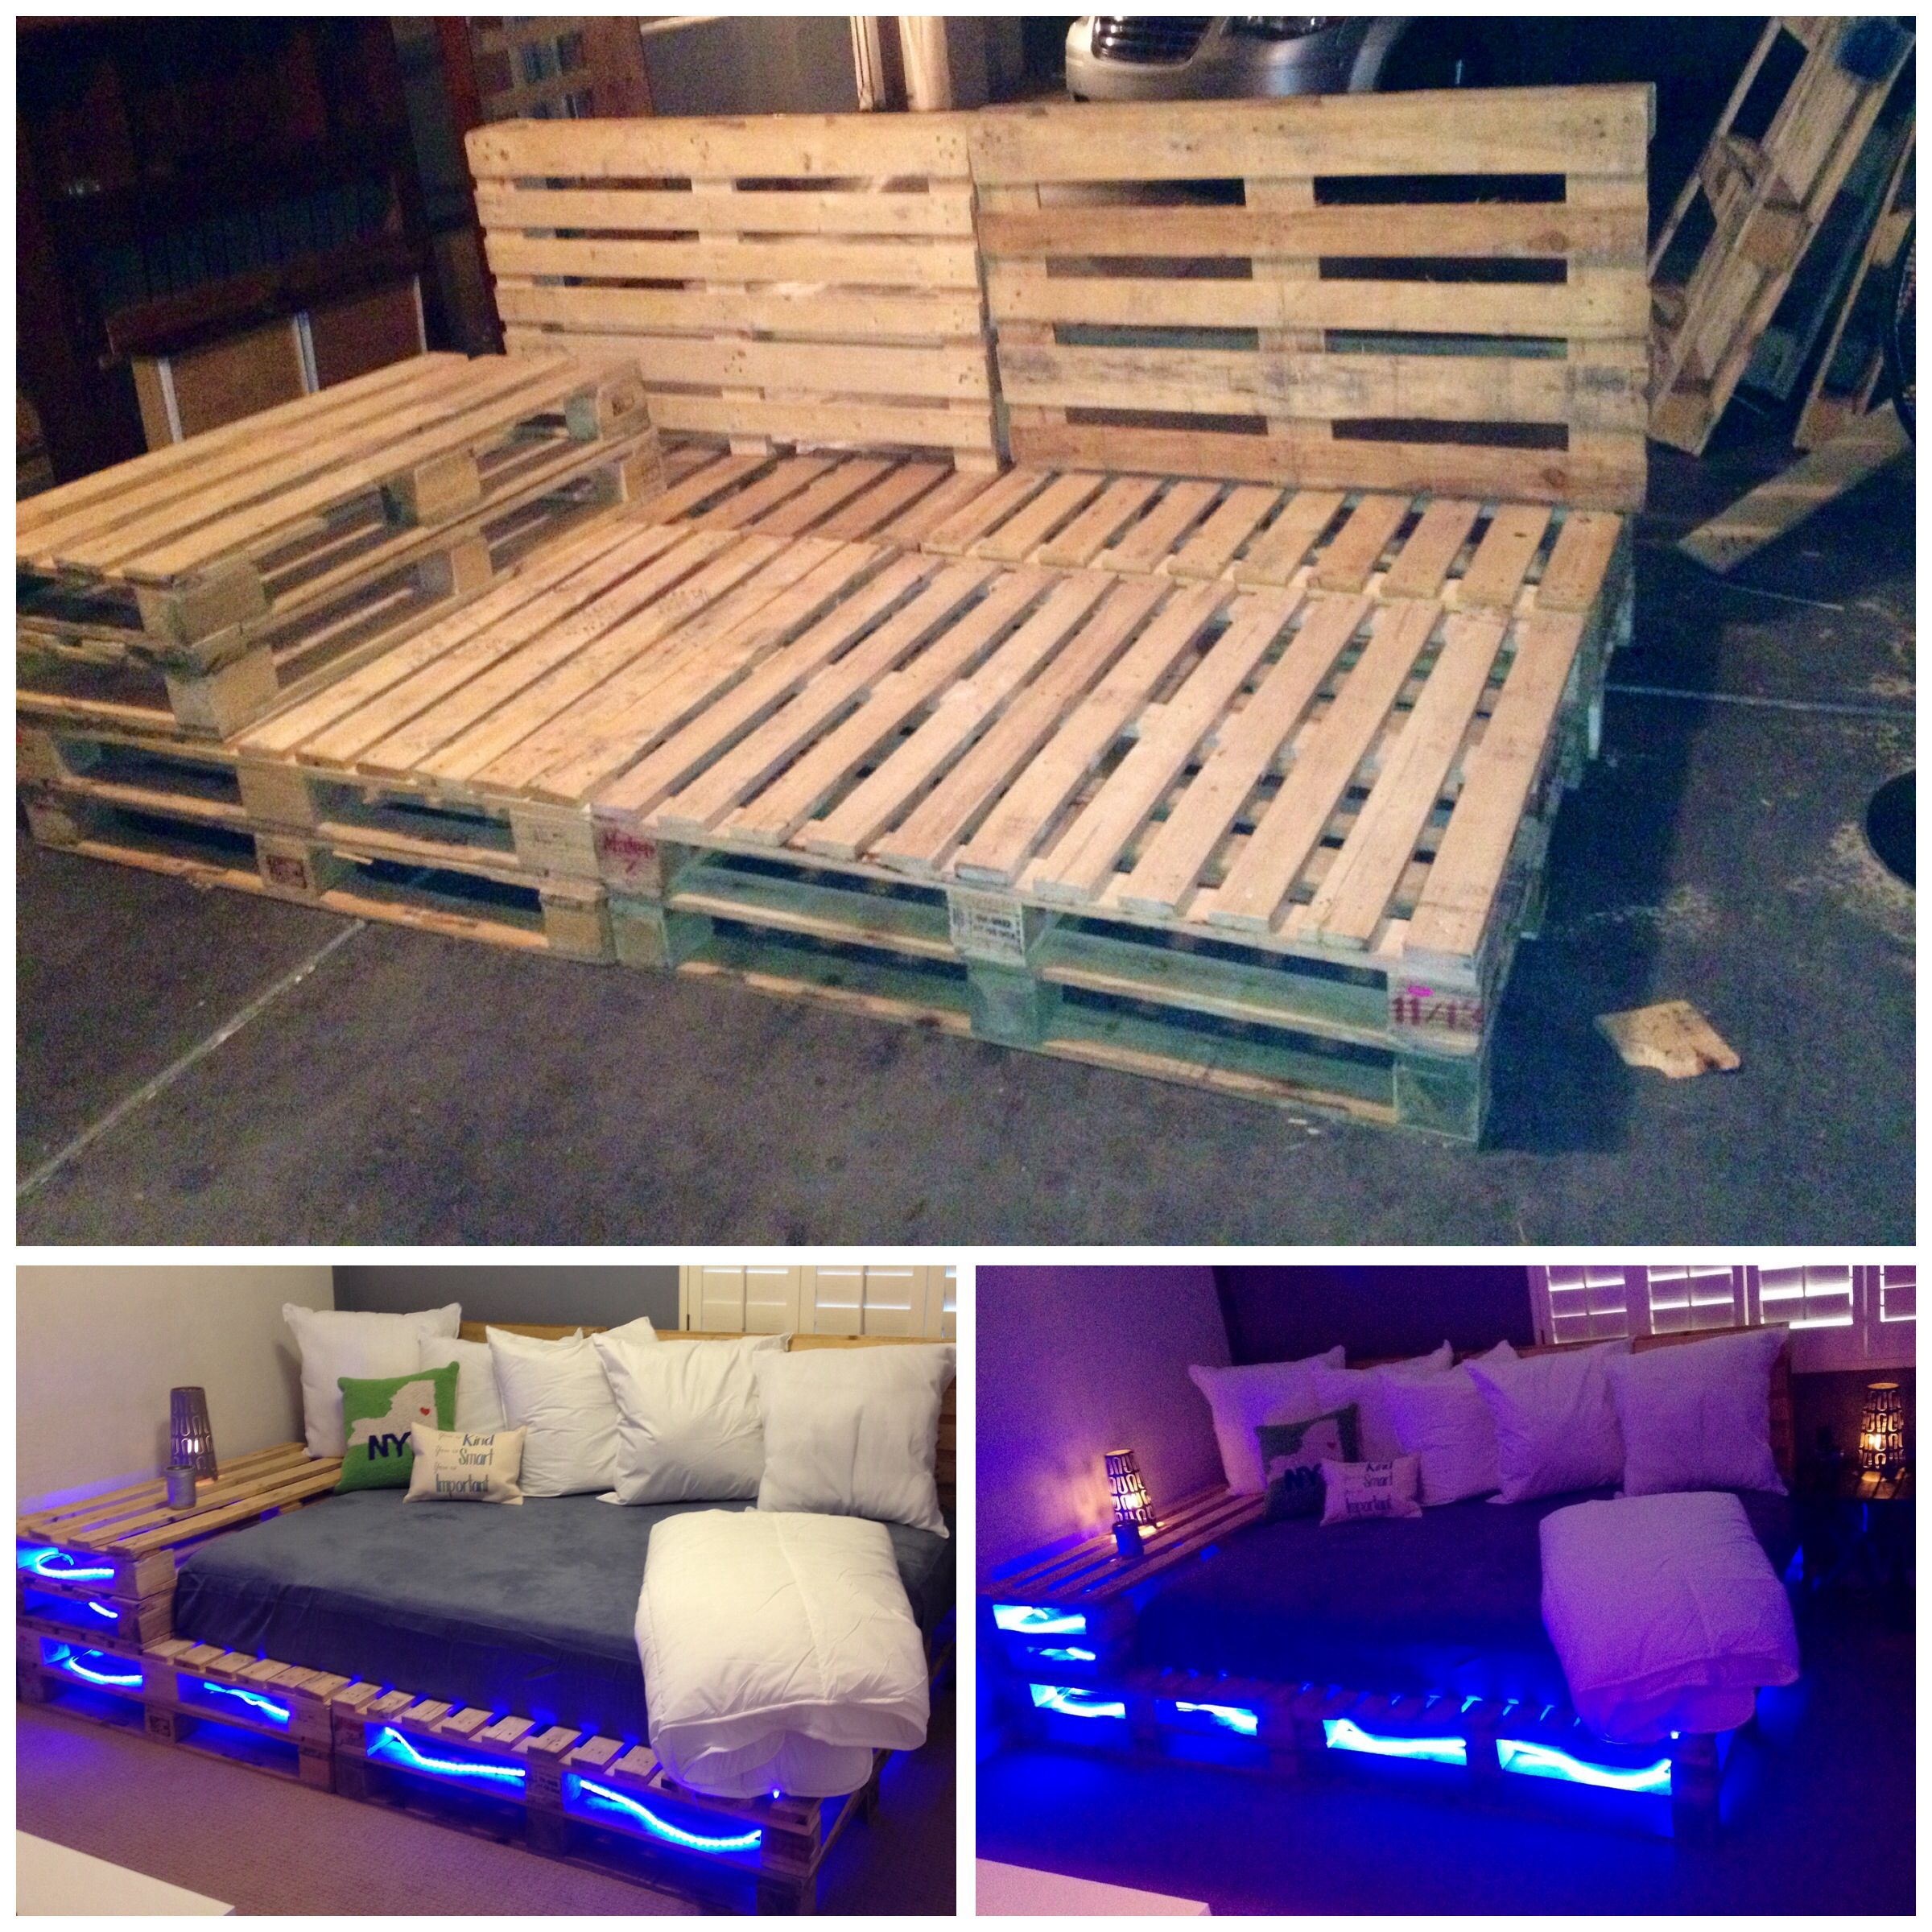 New addition to my home...pallet full size bed For the